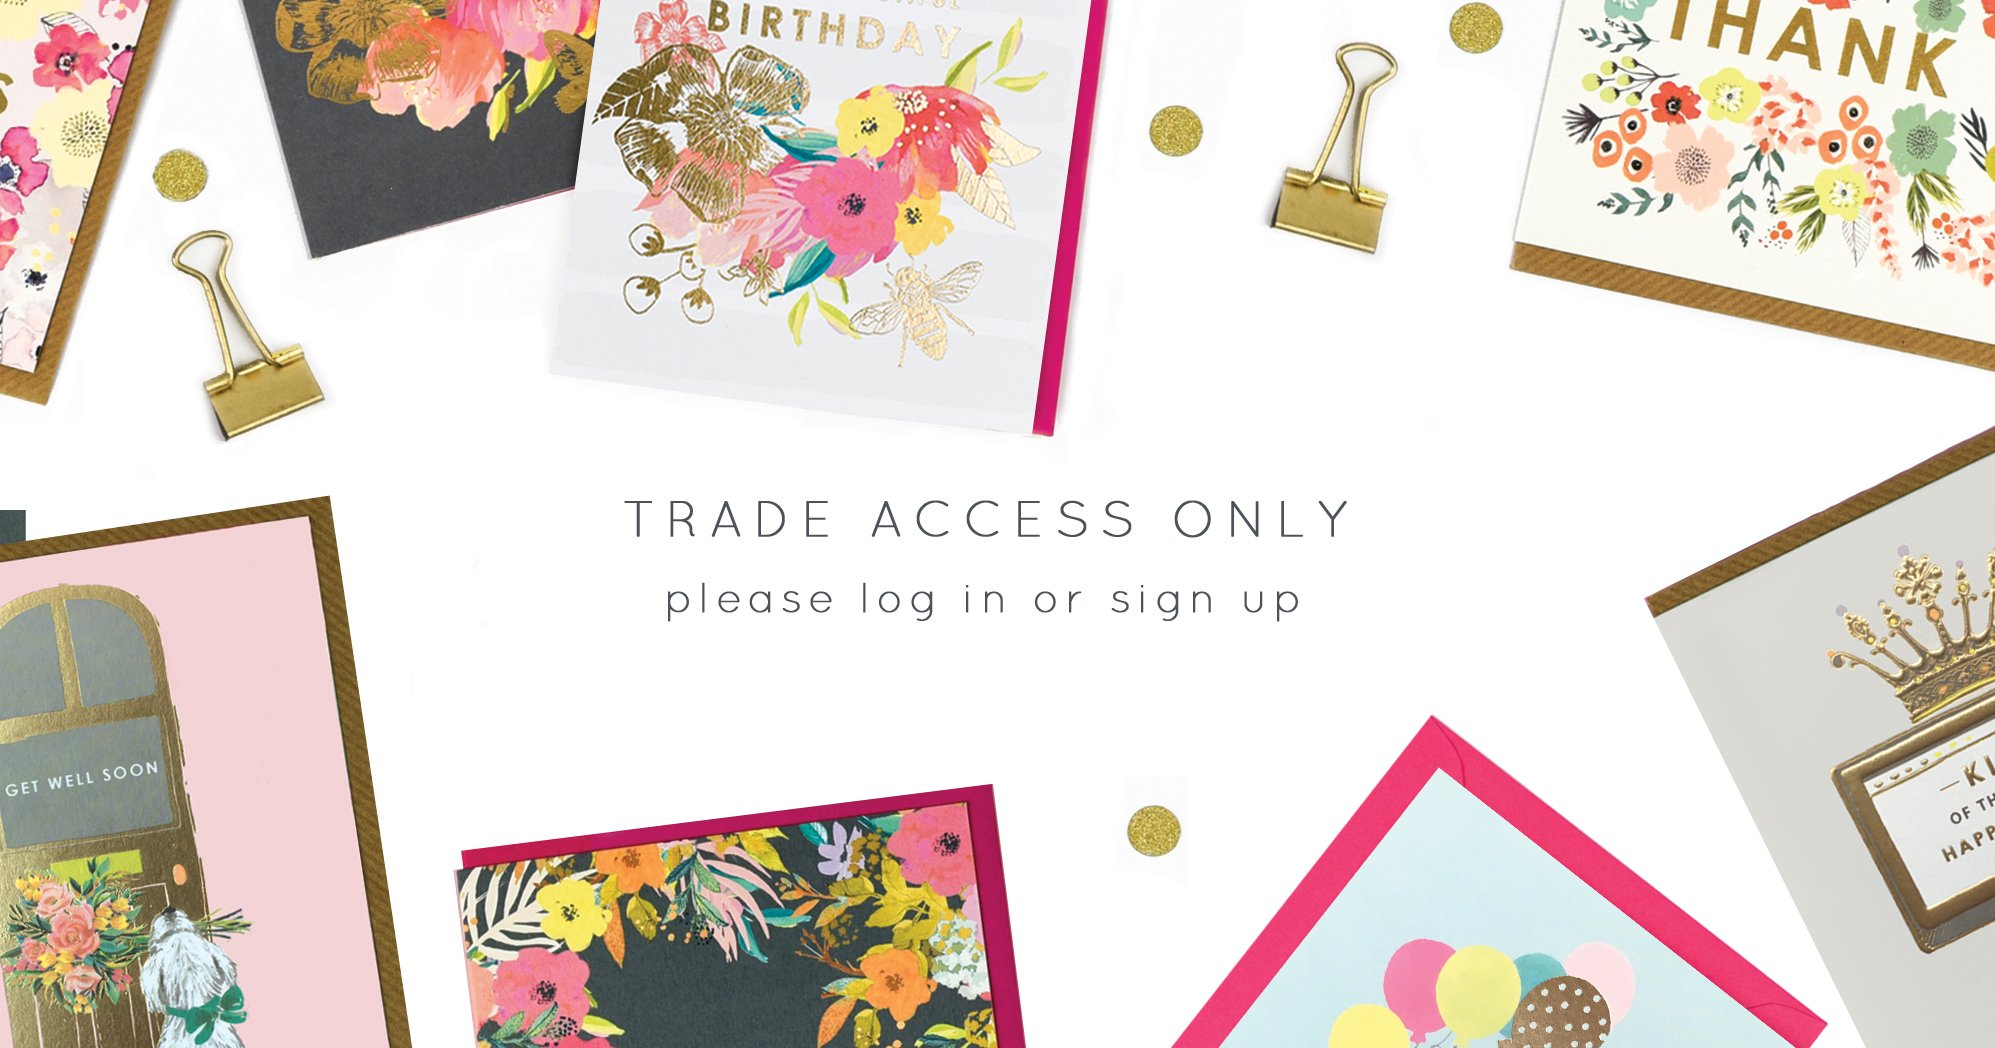 No Access - Trade Only